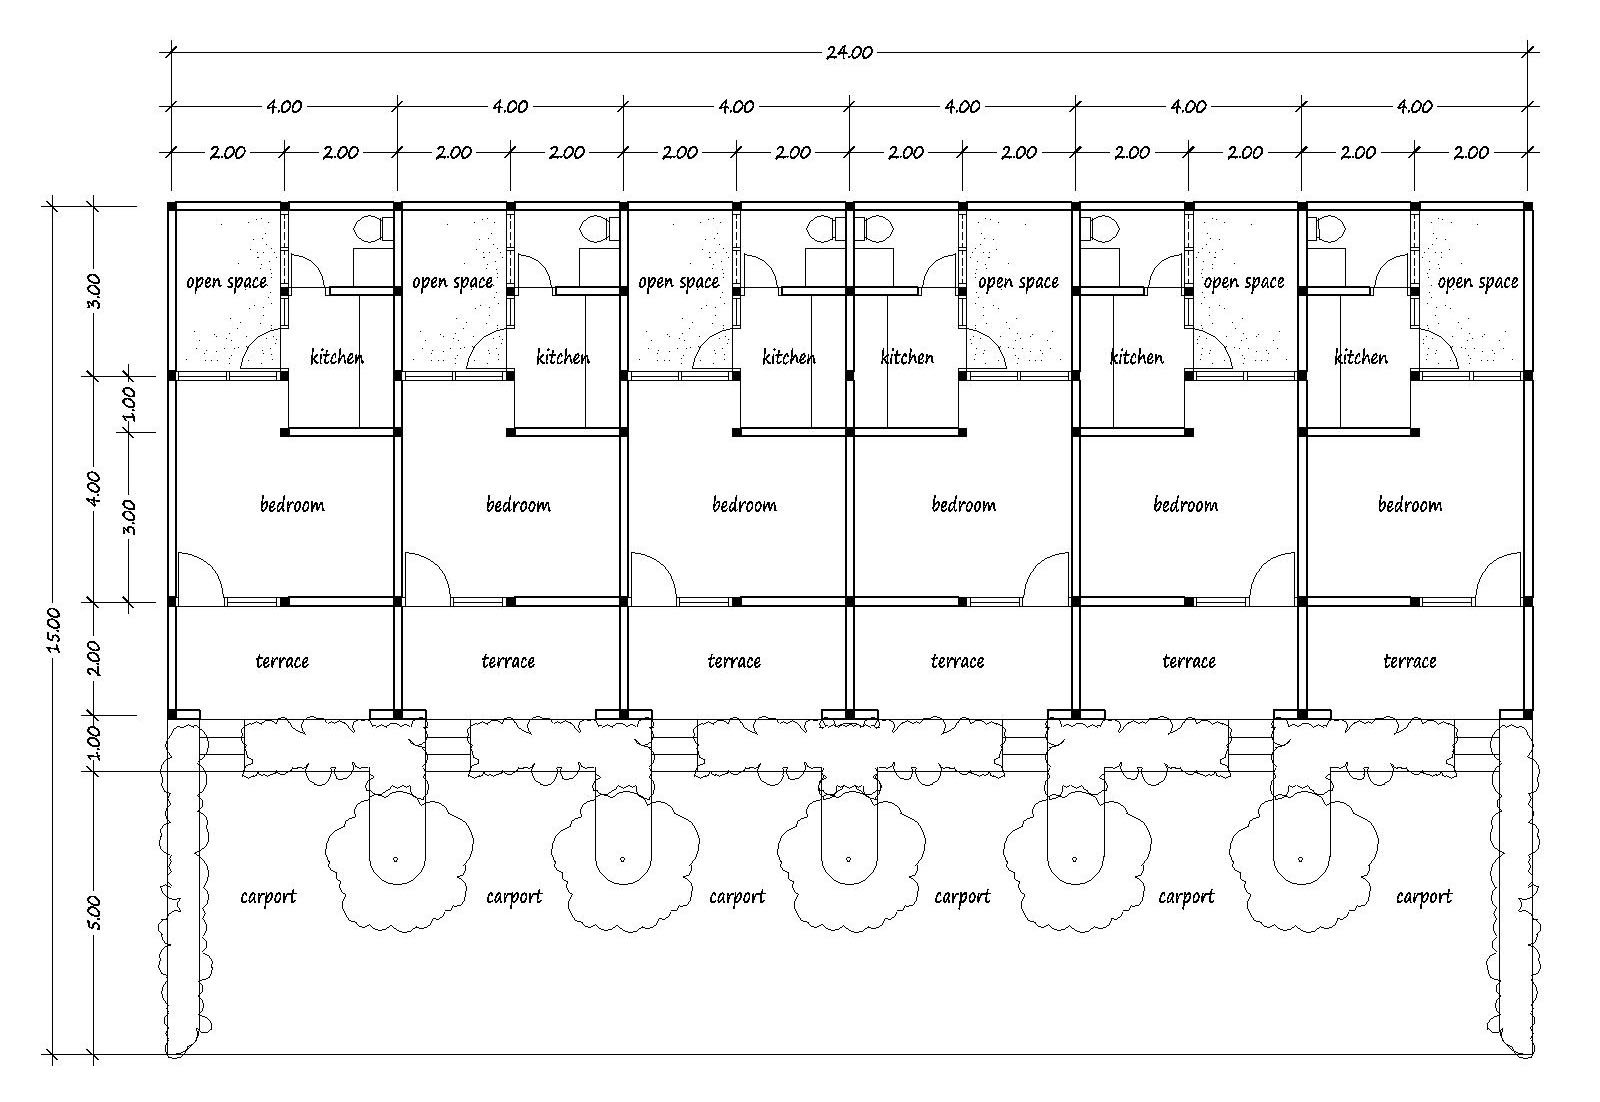 House plans for you plans image design and about house for Boarding kennel blueprints